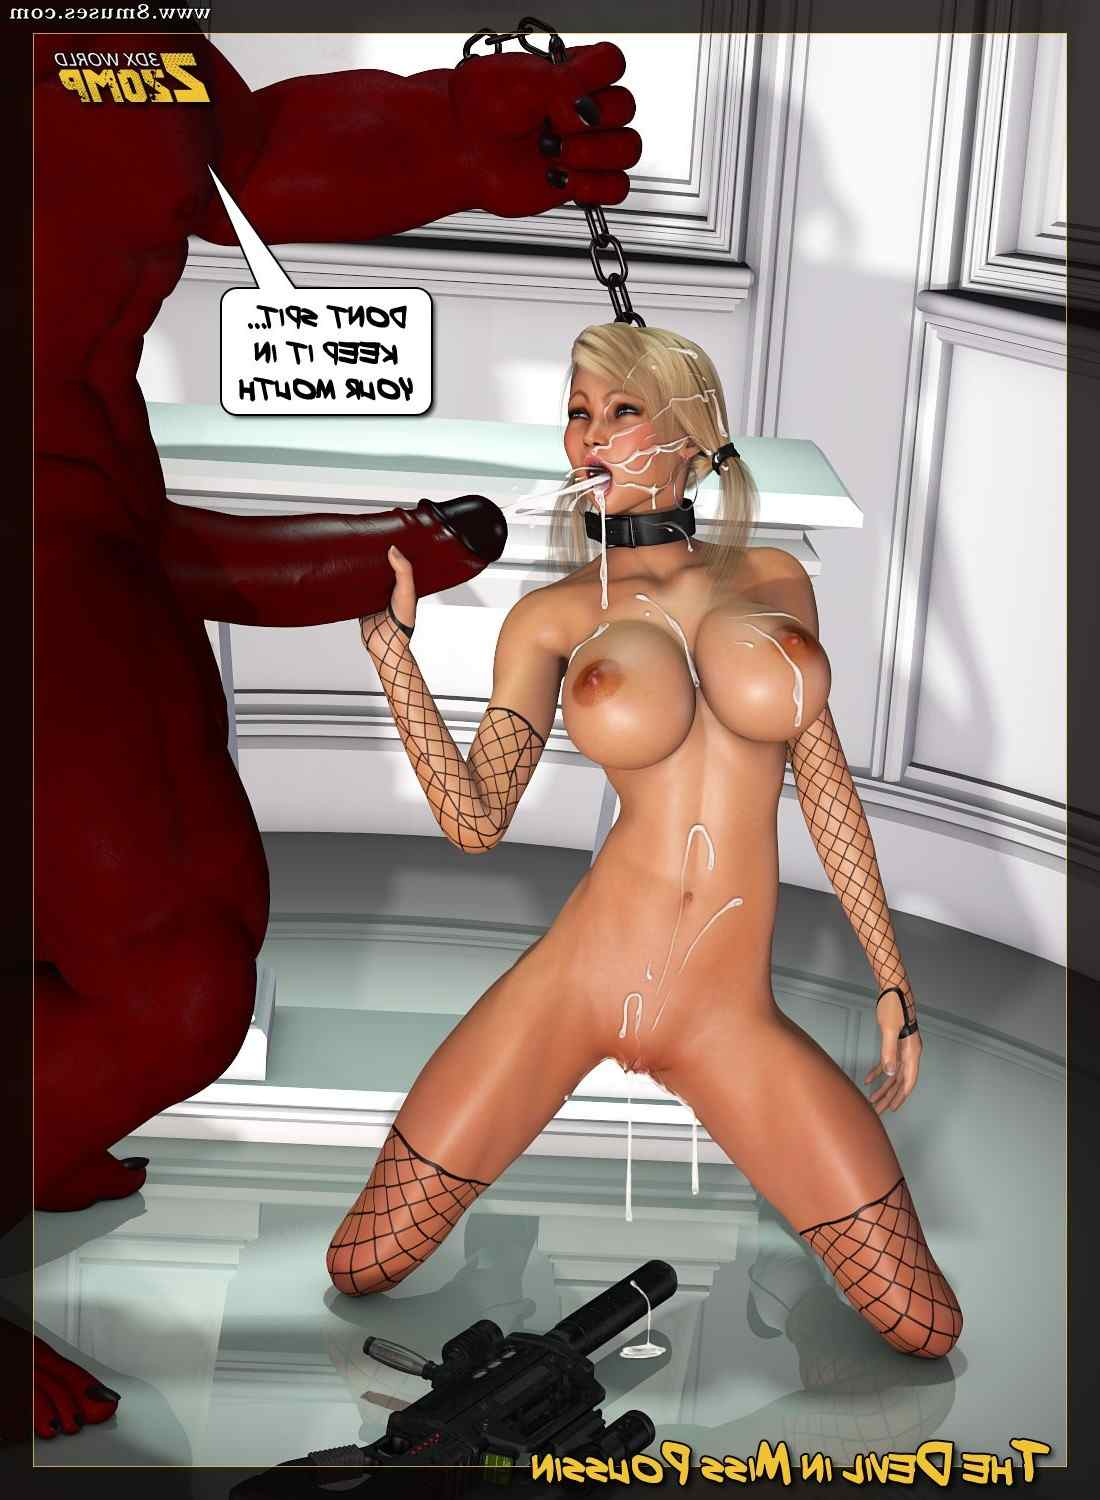 ZZomp-Comics/The-Devil-in-Miss-Pousin The_Devil_in_Miss_Pousin__8muses_-_Sex_and_Porn_Comics_22.jpg